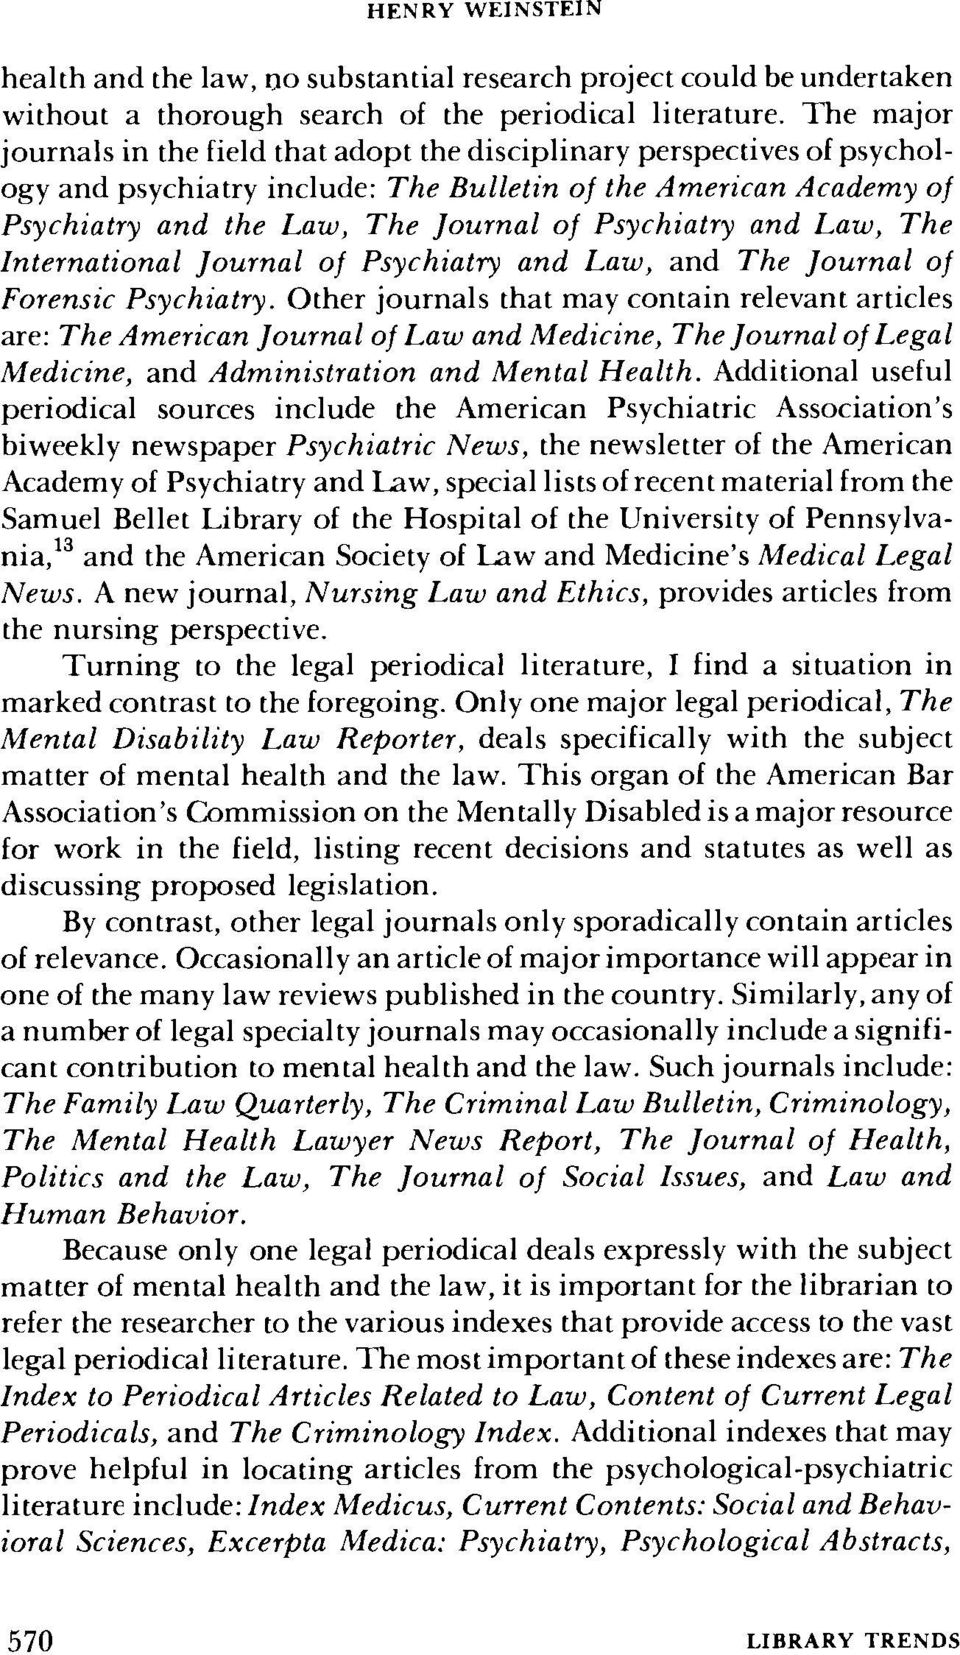 Psychiatry and Law, The International Journal of Psychiatry and Law, and The Journal of Forensic Psychiatry.